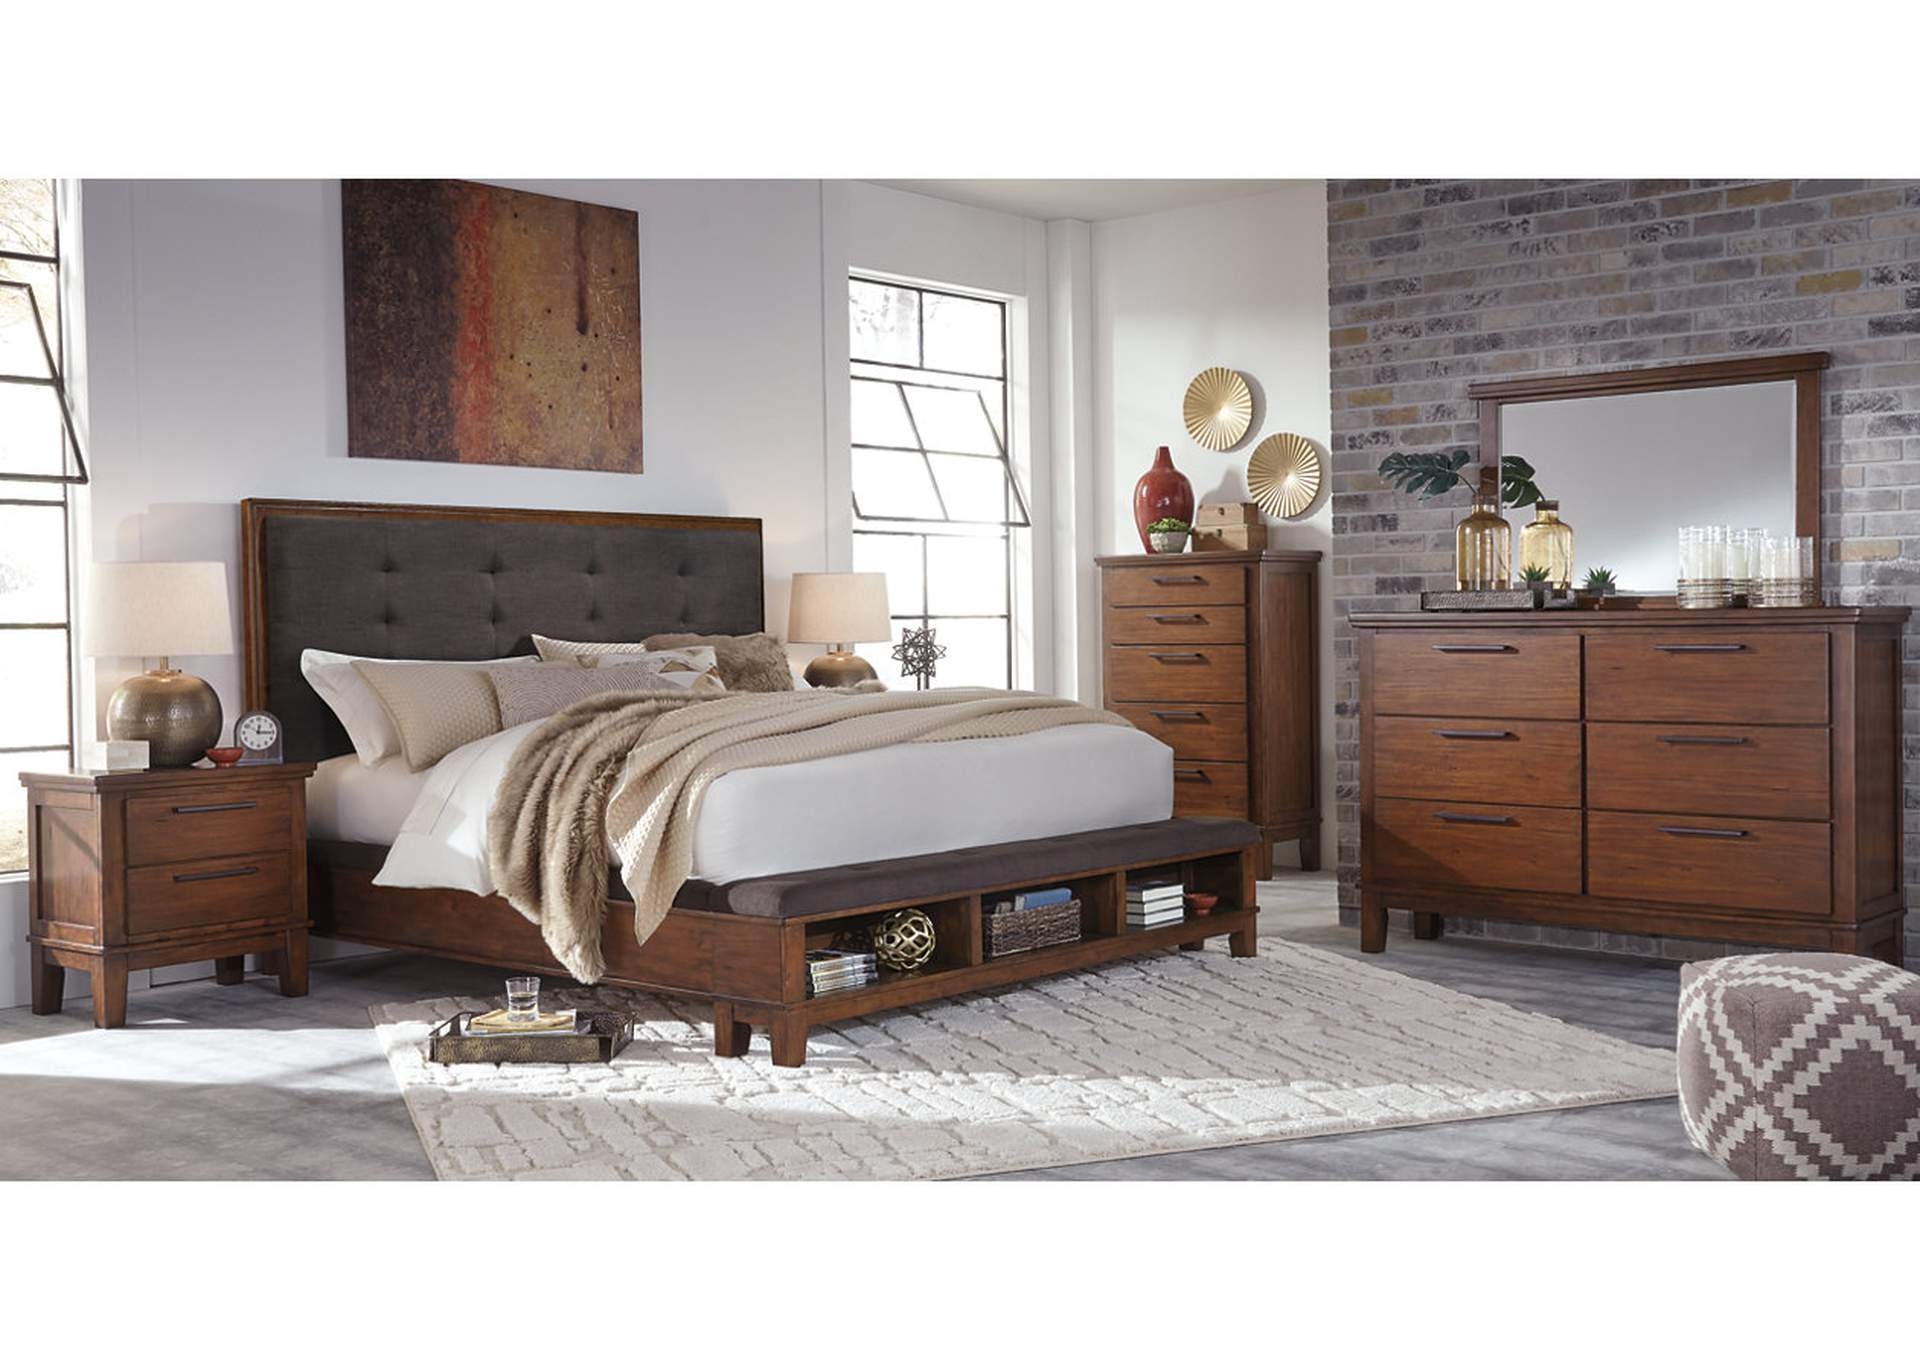 Ralene Medium Brown Queen Upholstered Storage Bed w/Dresser, Mirror, Drawer Chest & Nightstand,Signature Design By Ashley